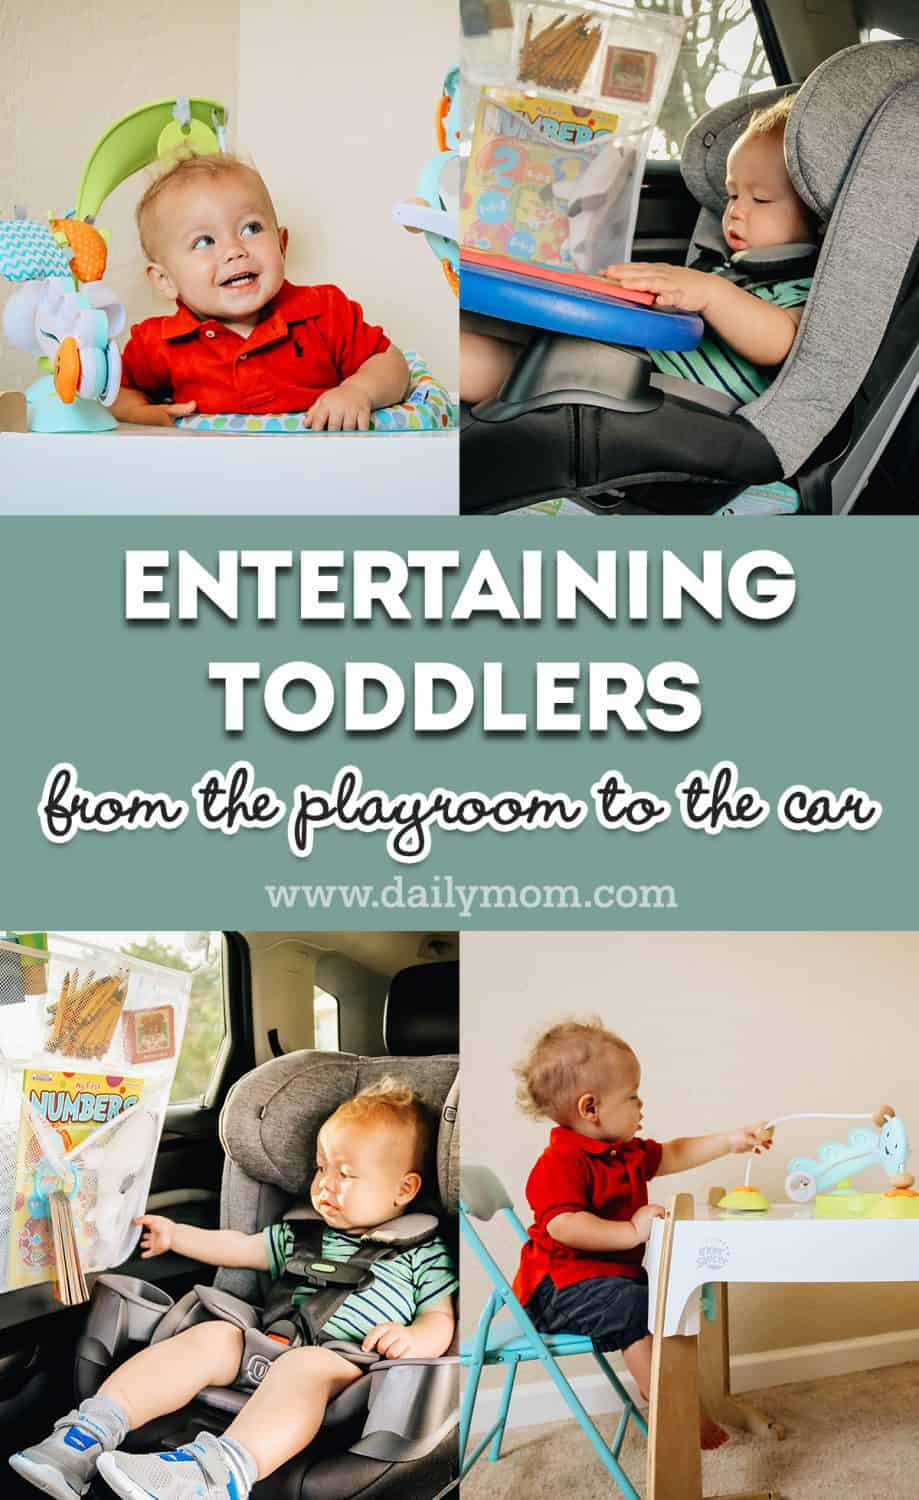 Entertaining toddlers from the playroom to the car